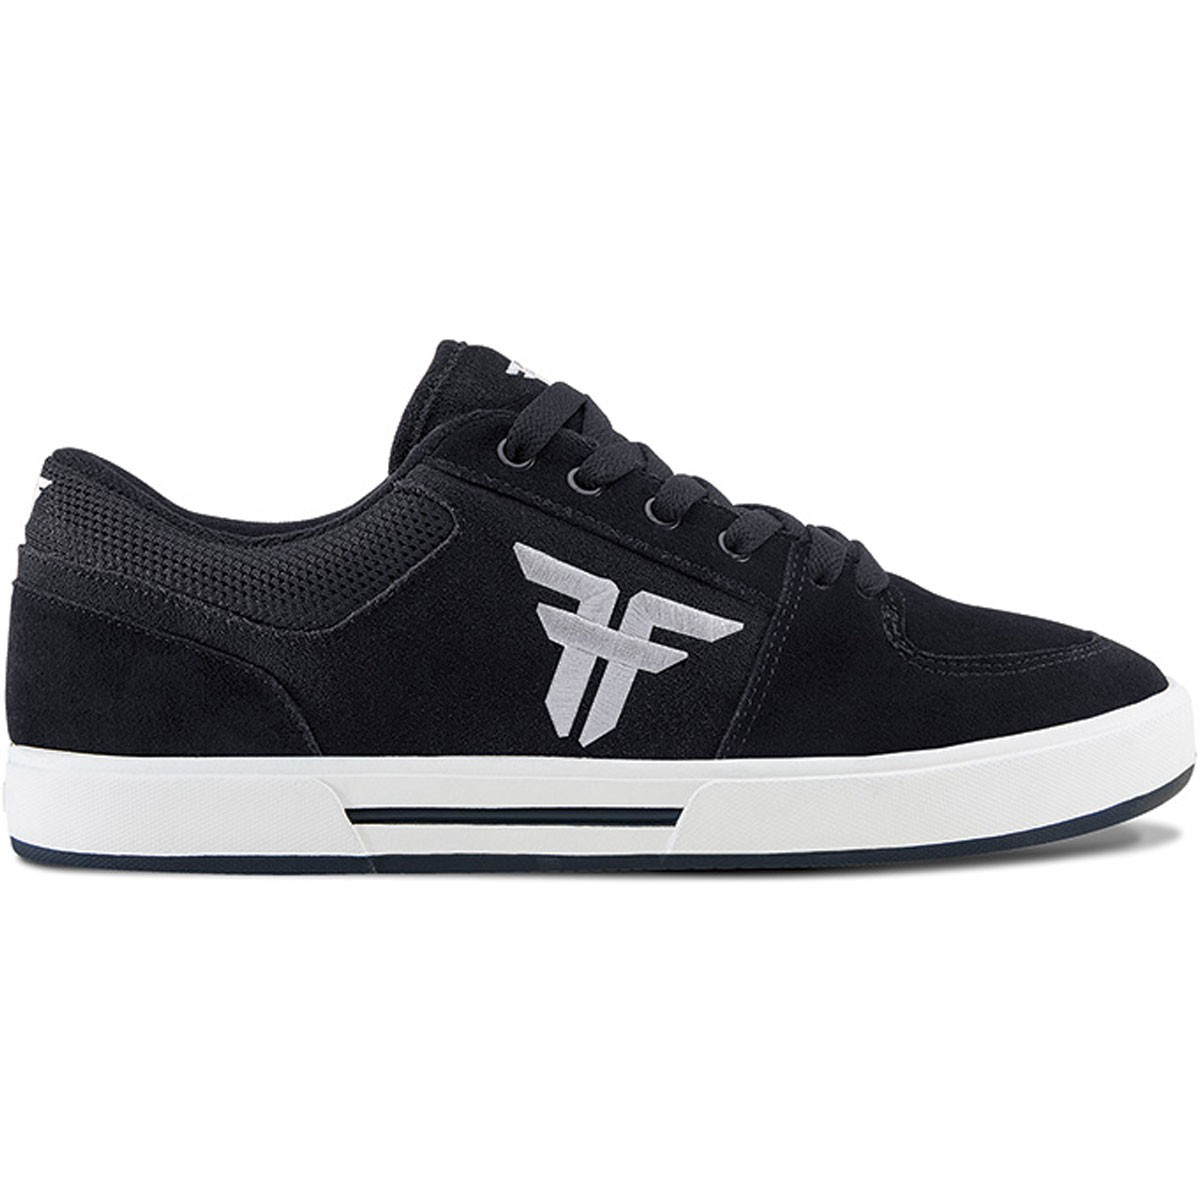 Fallen Patriot Shoes - Black/White - 7.0